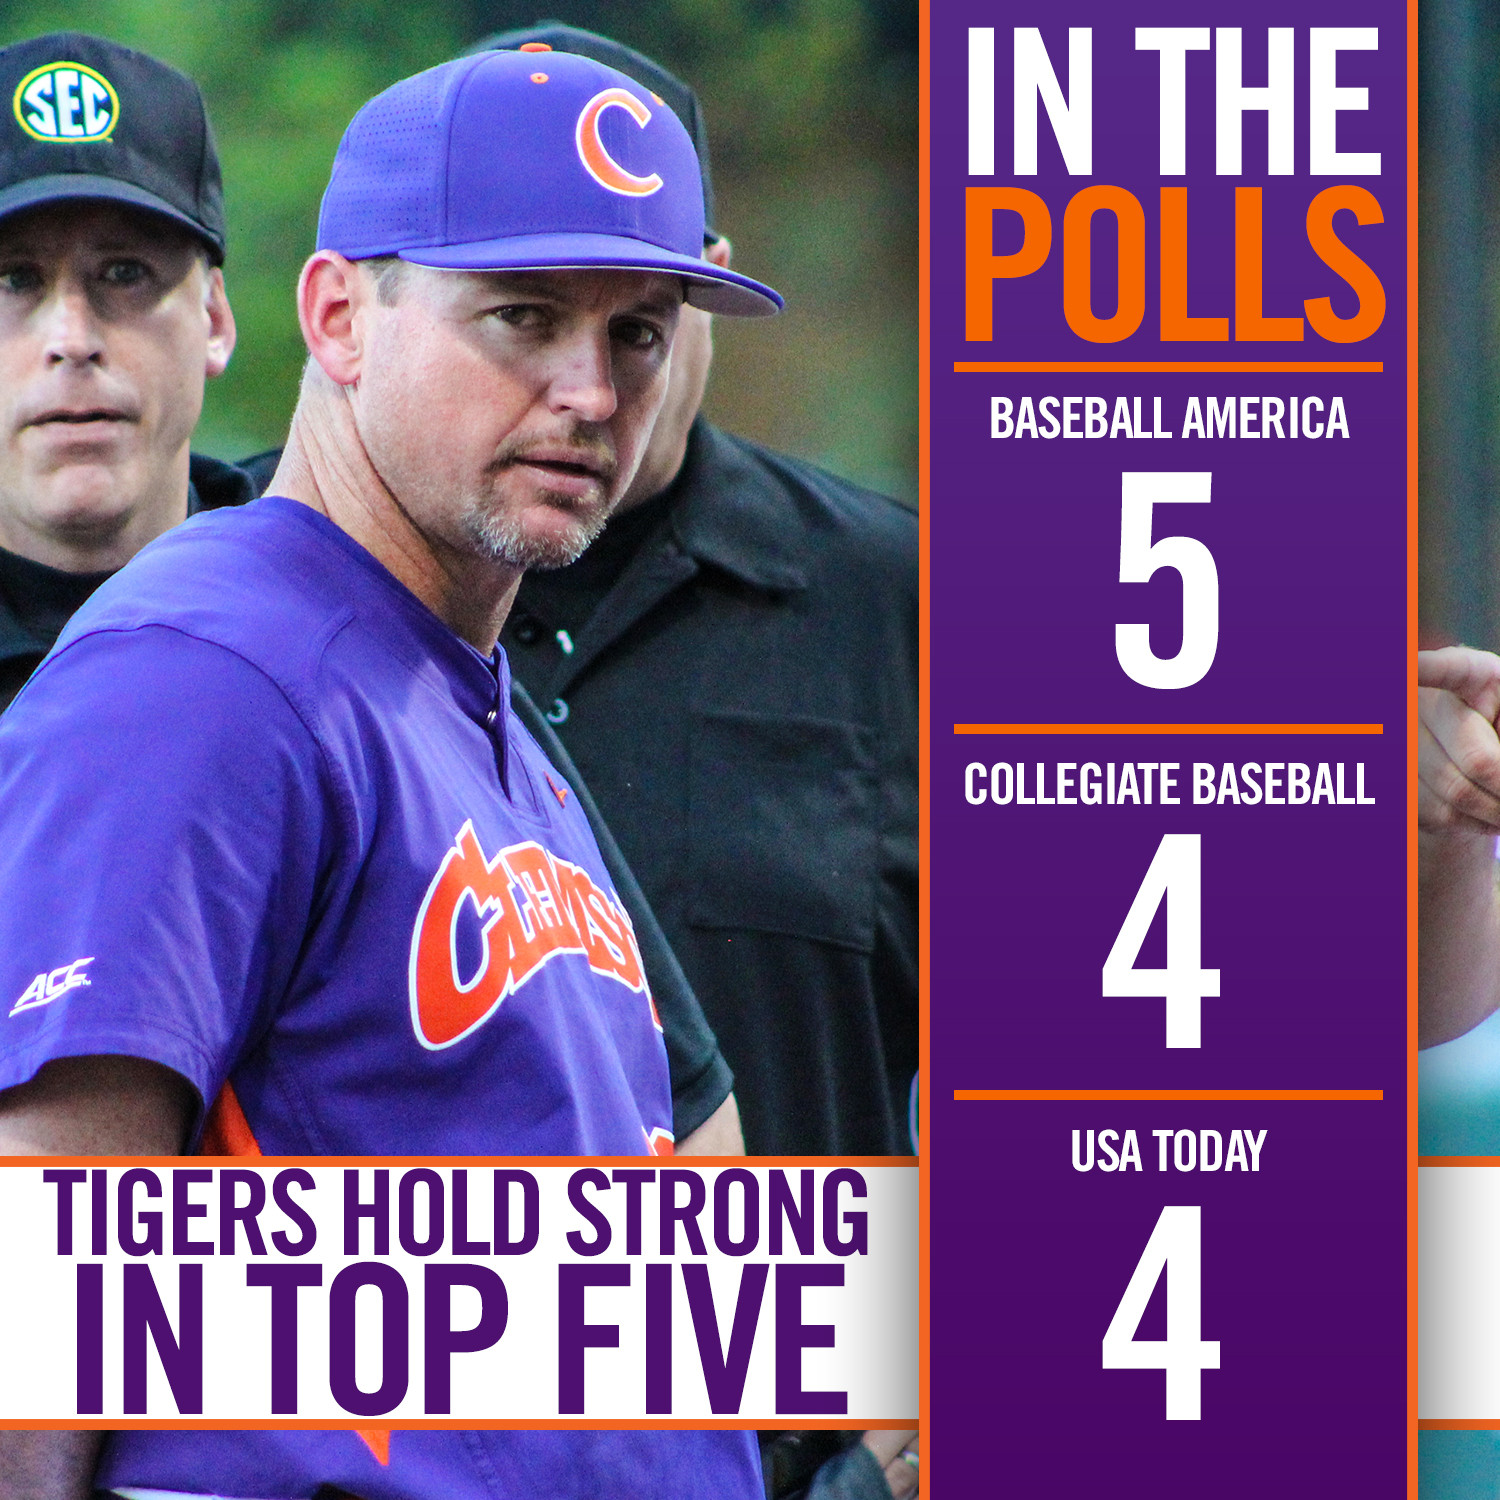 Tigers Hold Strong in Top Five